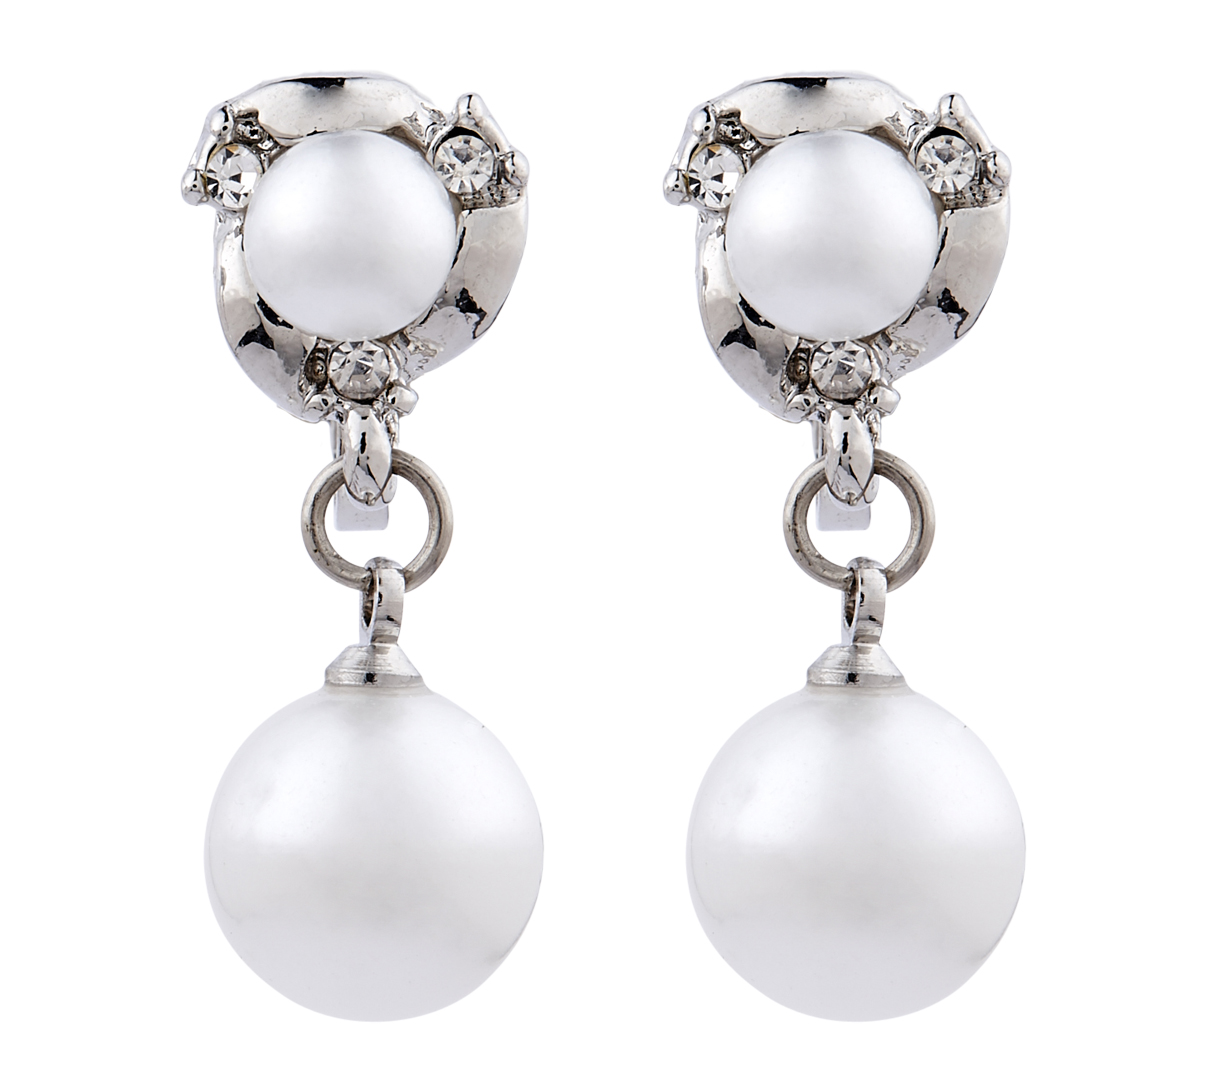 Clip On Earrings - Harper - silver earring with diamante crystals and pearls